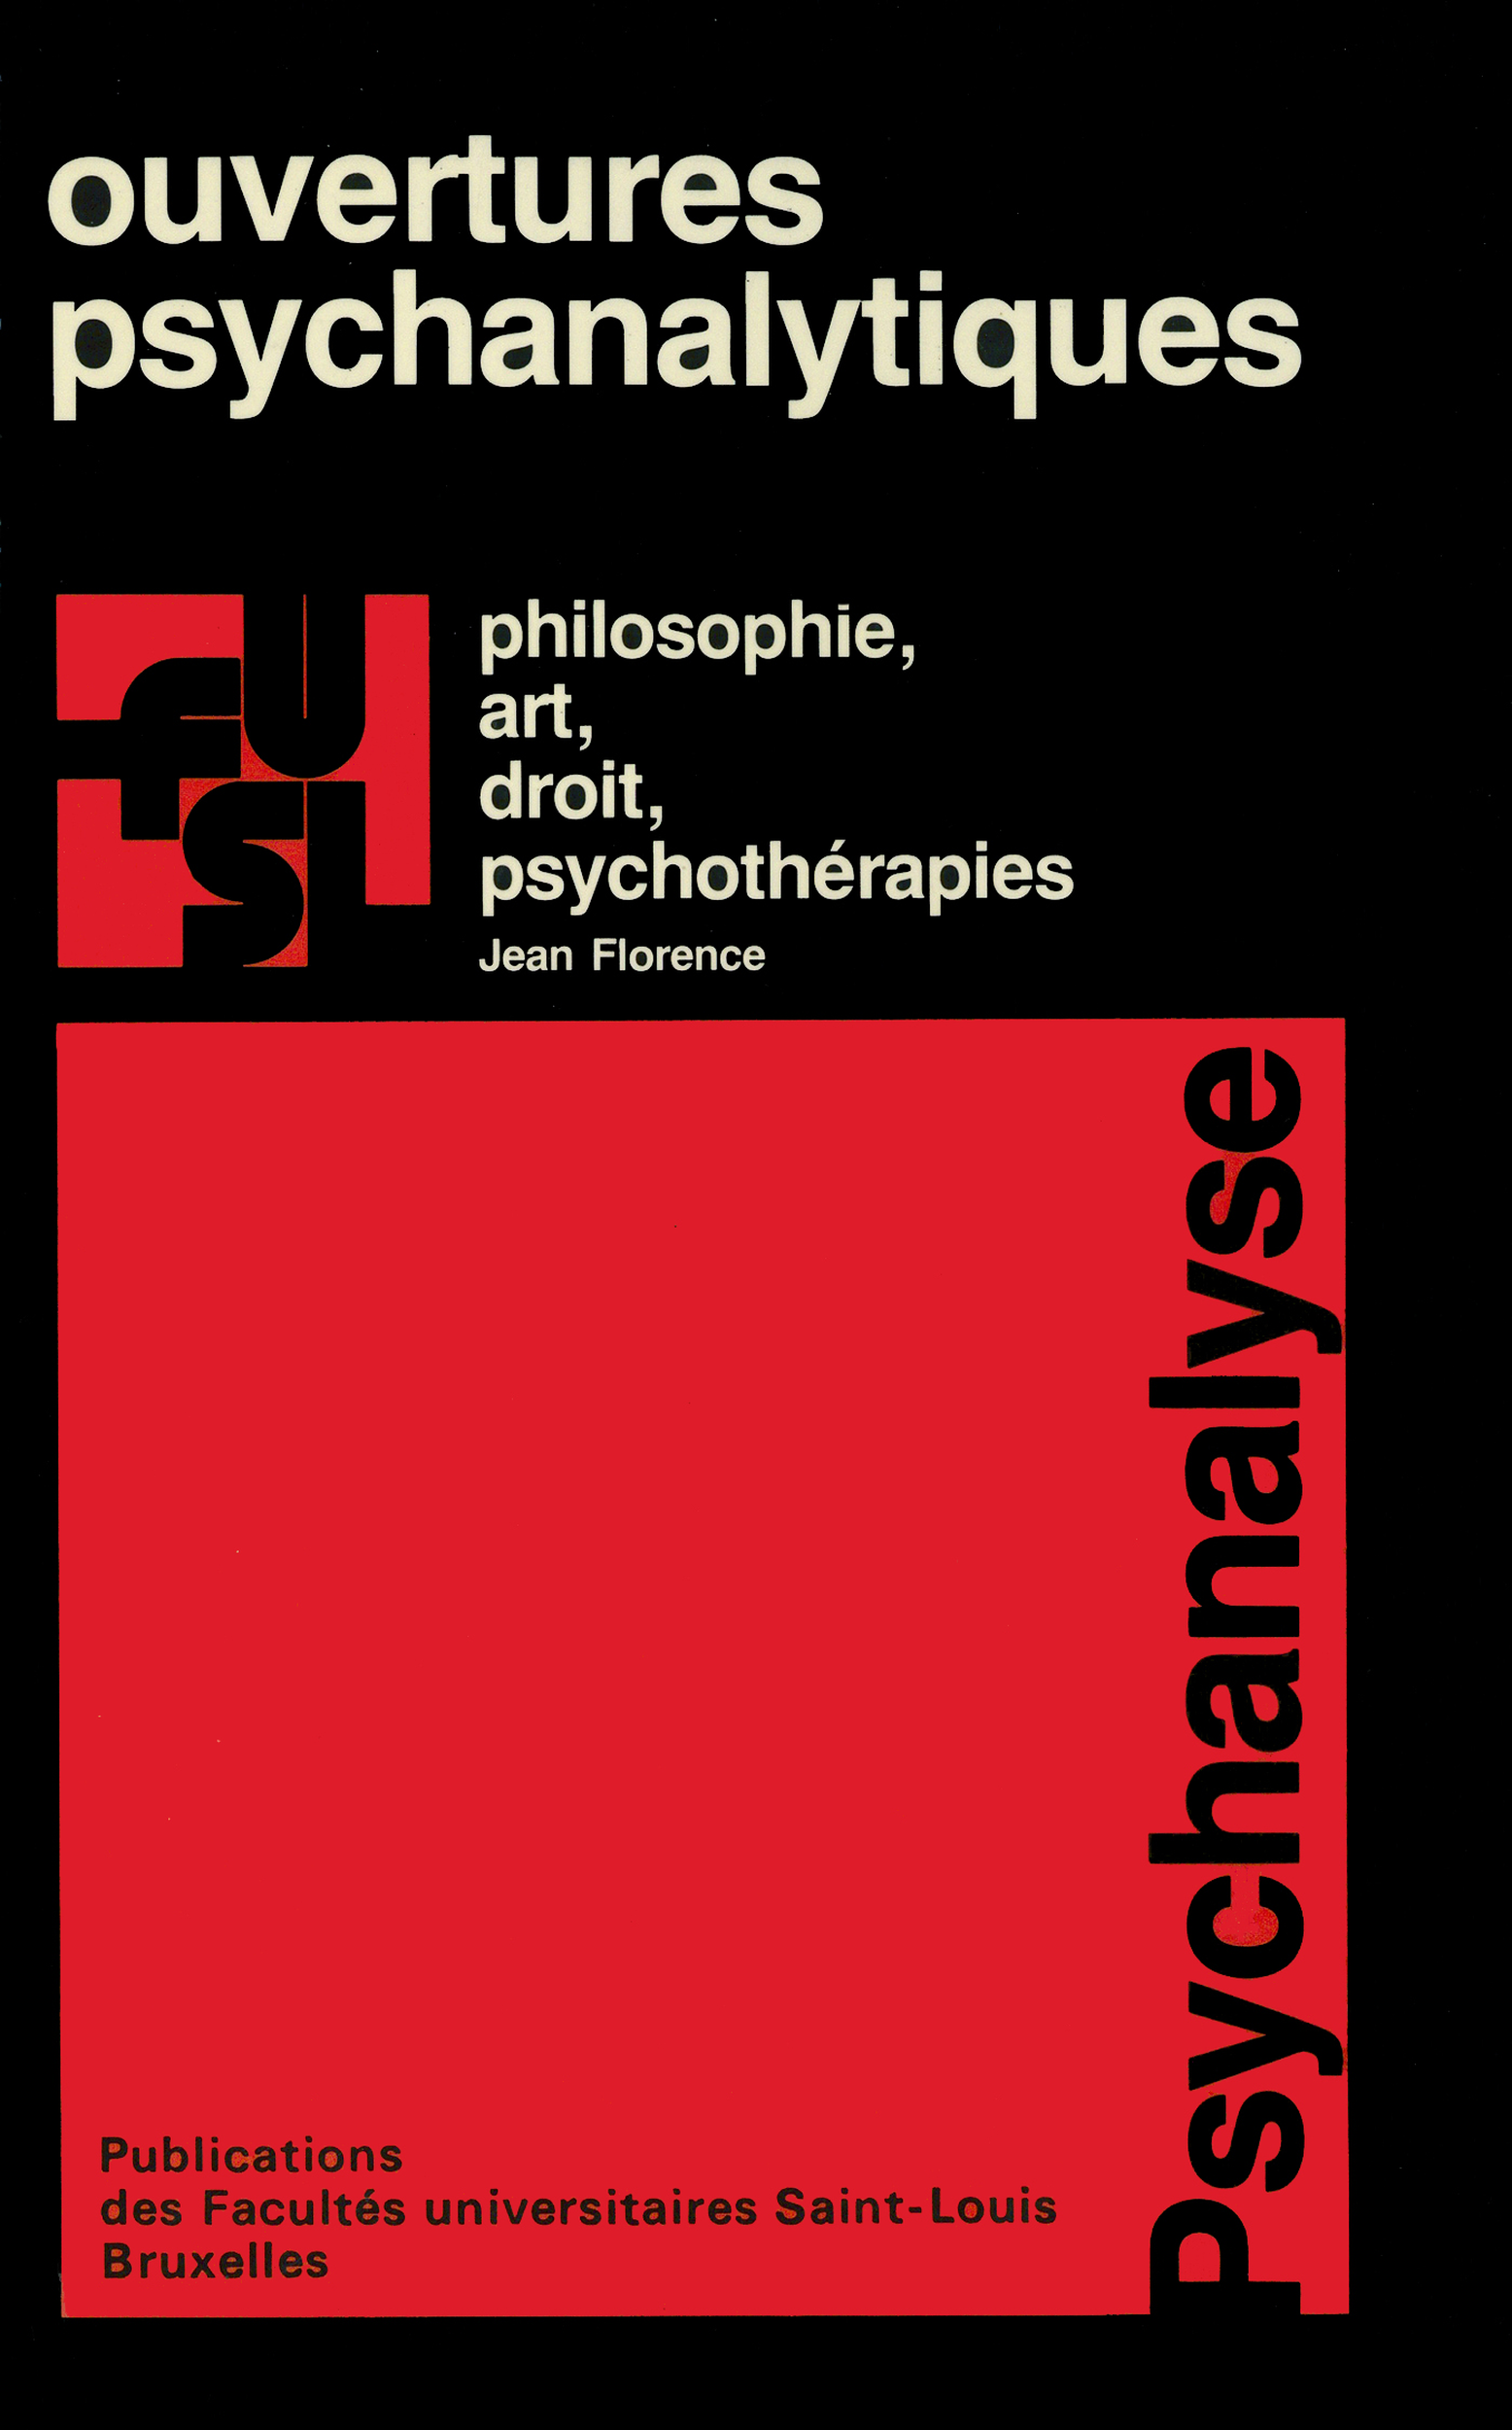 Ouvertures psychanalytiques